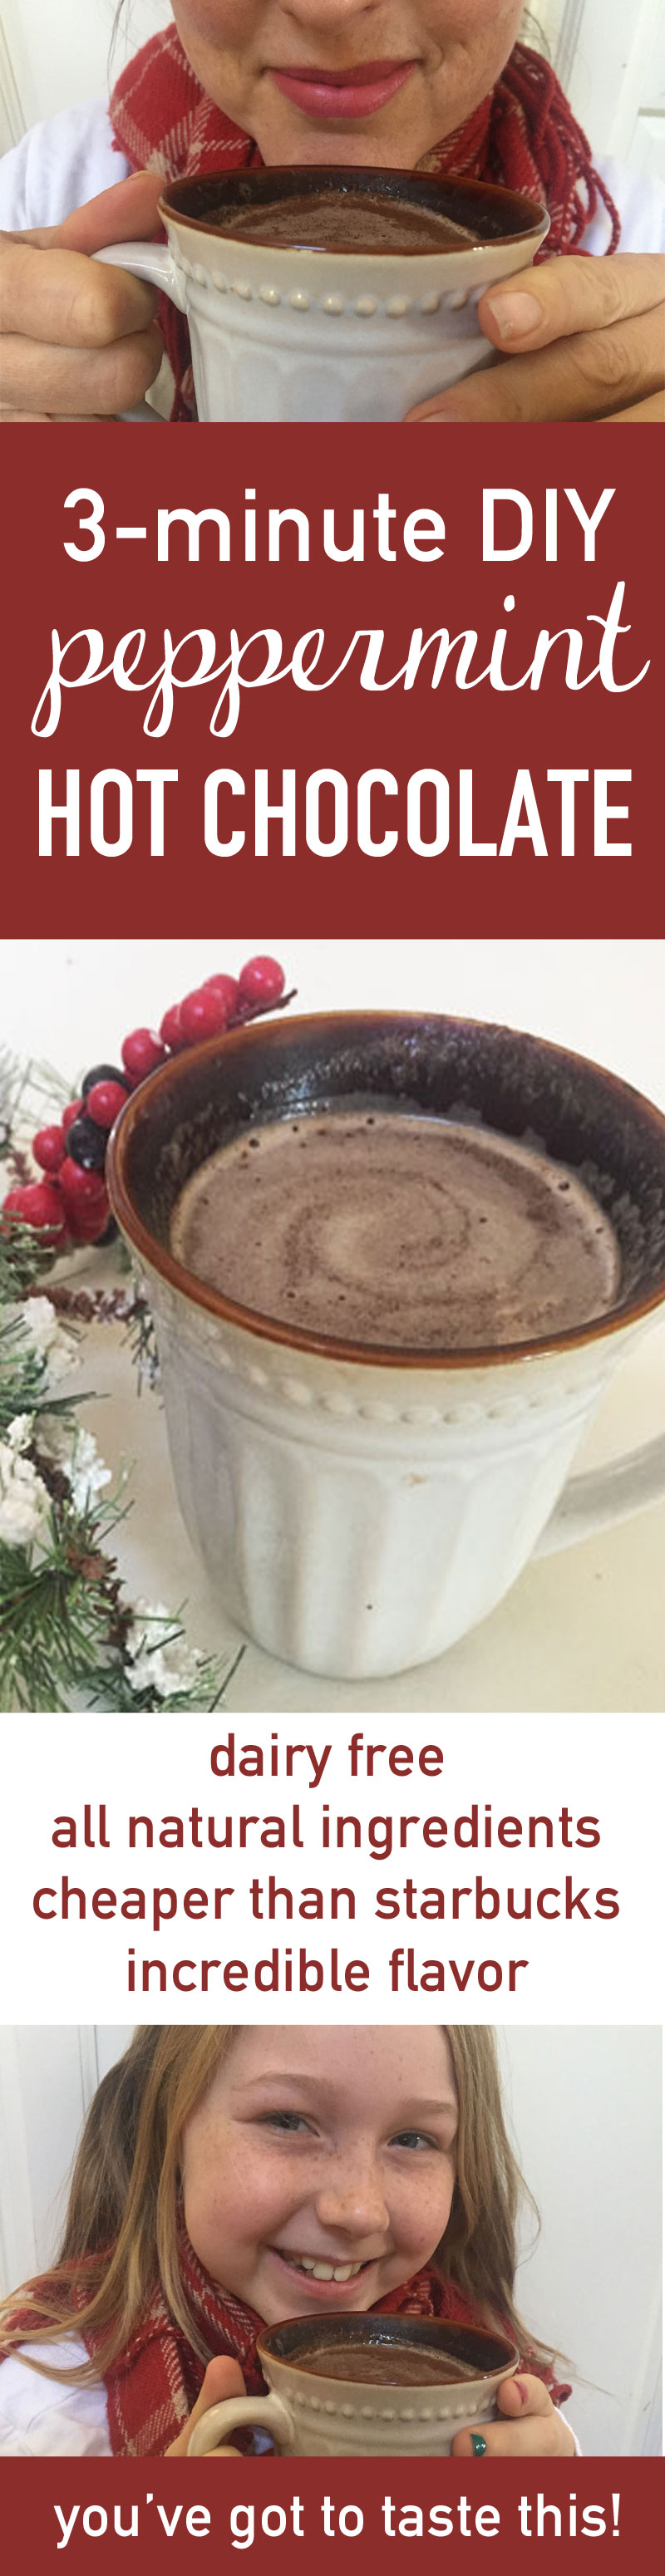 Peppermint hot chocolate recipe | peppermint hot chocolate | make peppermint hot chocolate | peppermint hot cocoa | make peppermint hot cocoa | candy cane hot cocoa | candy cane hot chocolate | candy cane hot chocolate recipe | candy cane cocoa | hot chocolate candy cane | hot cocoa | hot cocoa recipe | dairy free hot chocolate